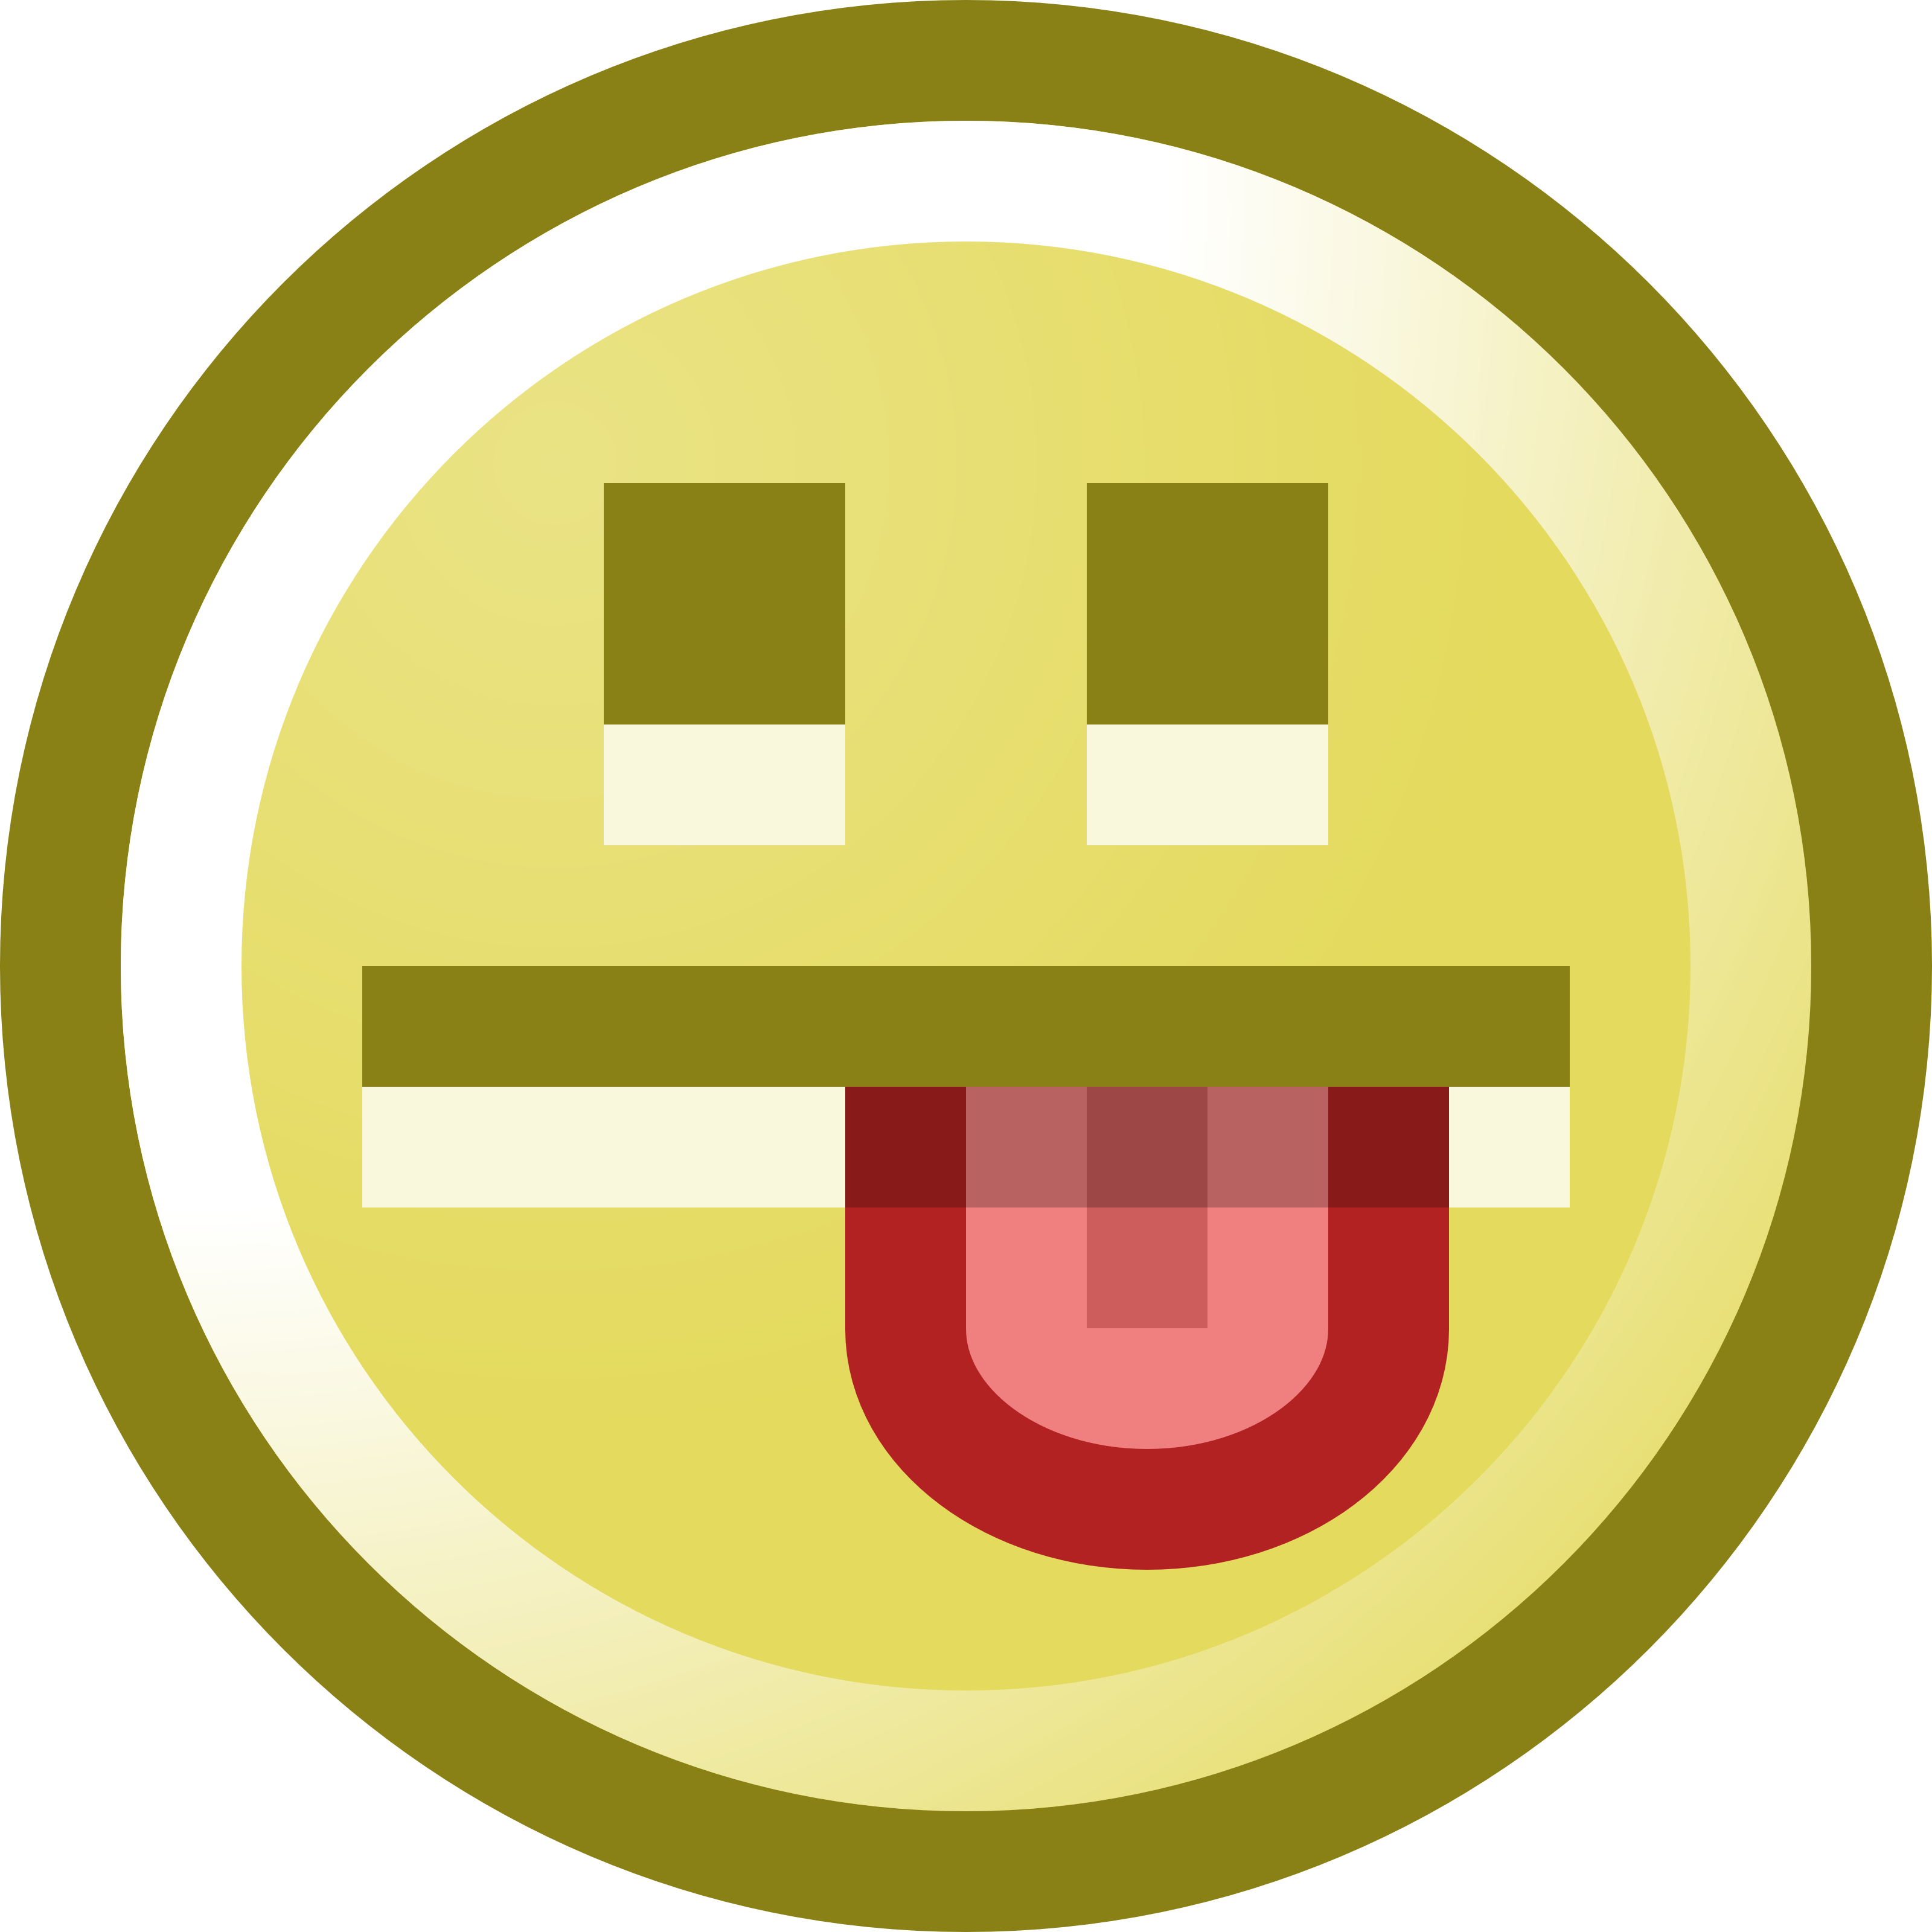 Smiley Face With Tongue Out Clip Art